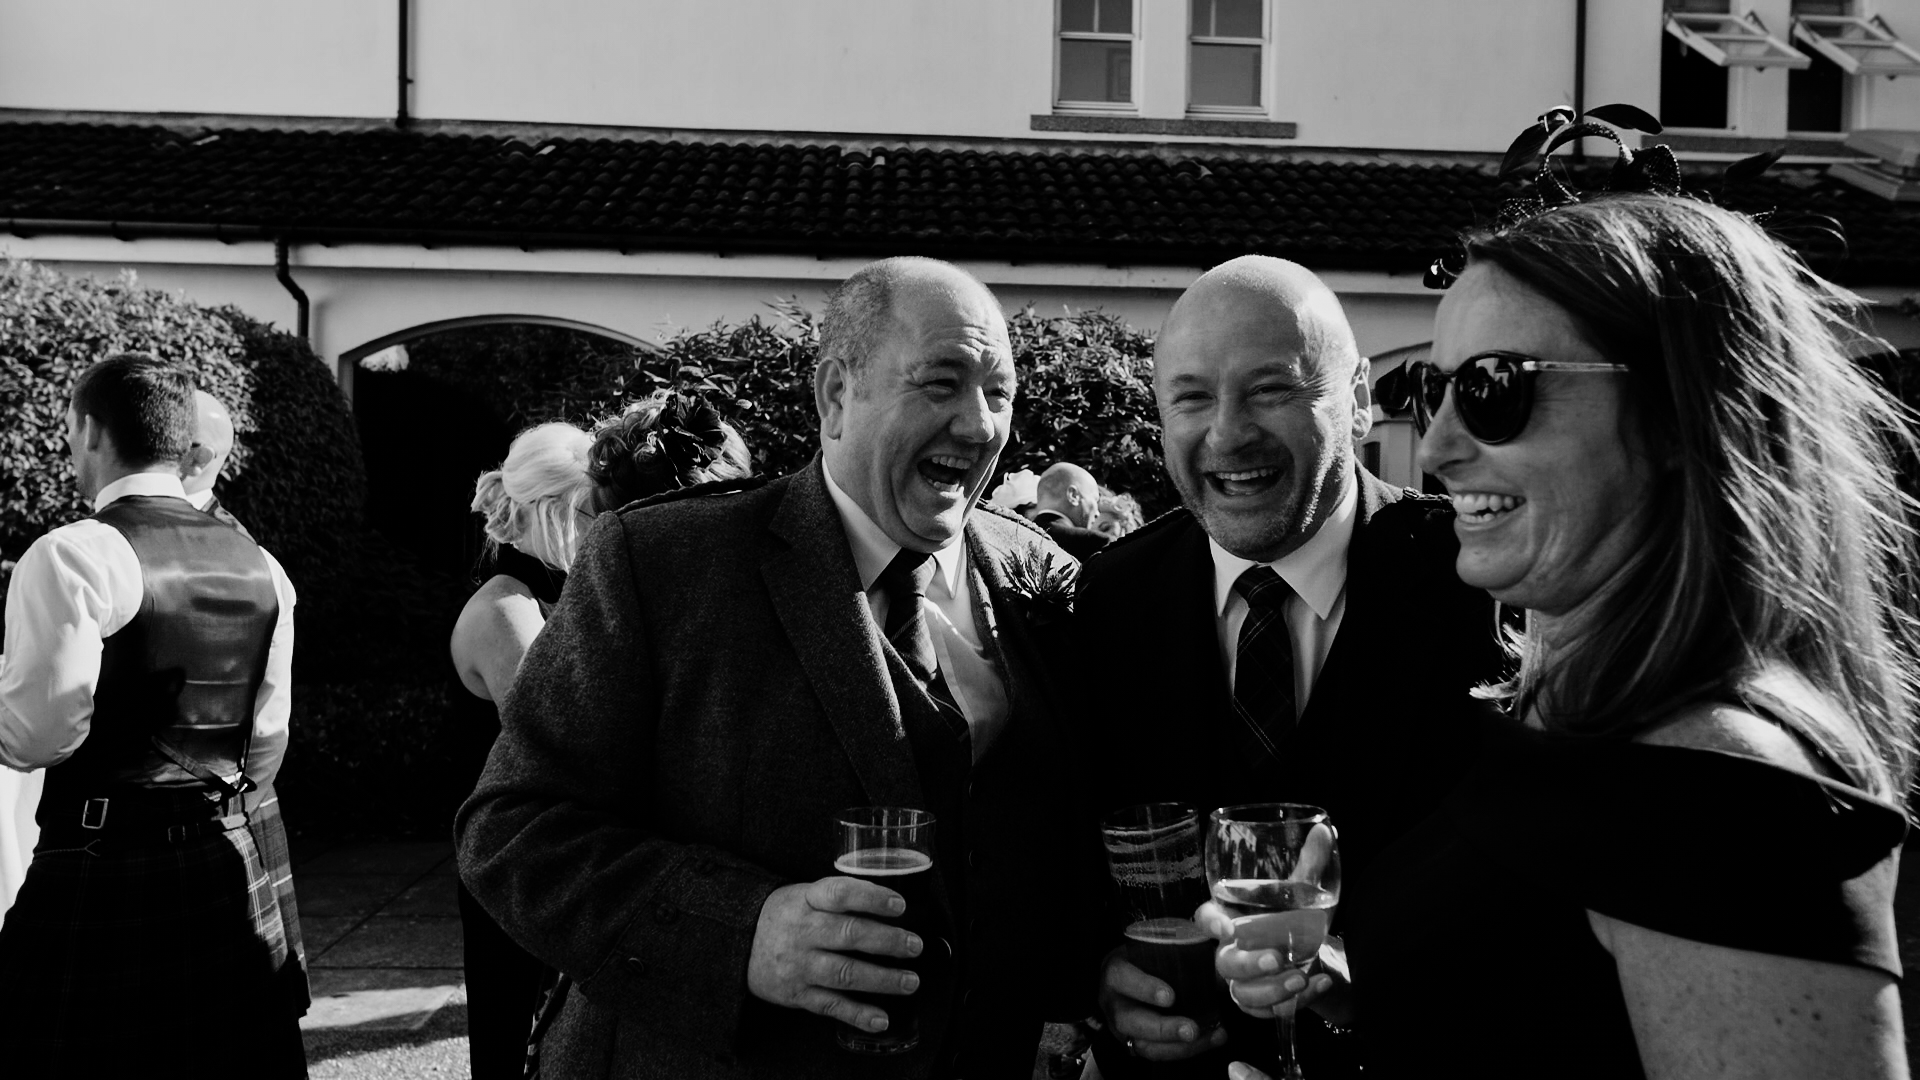 Marcliffe-Wedding-020.jpg